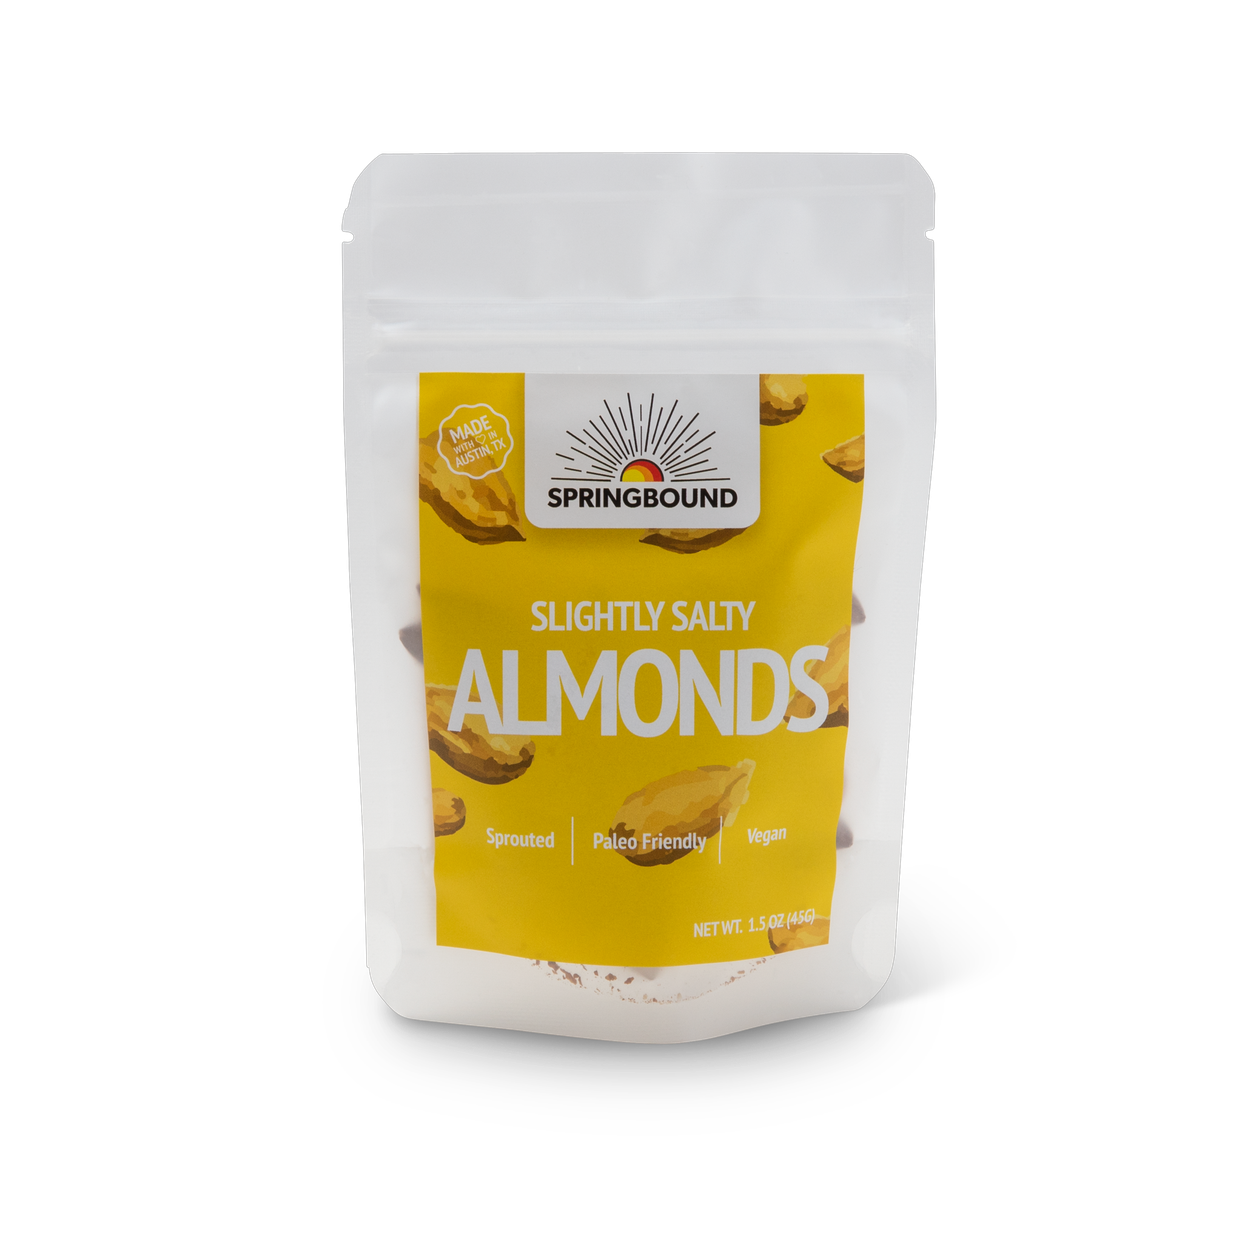 springbound nutz - slightly salty almonds